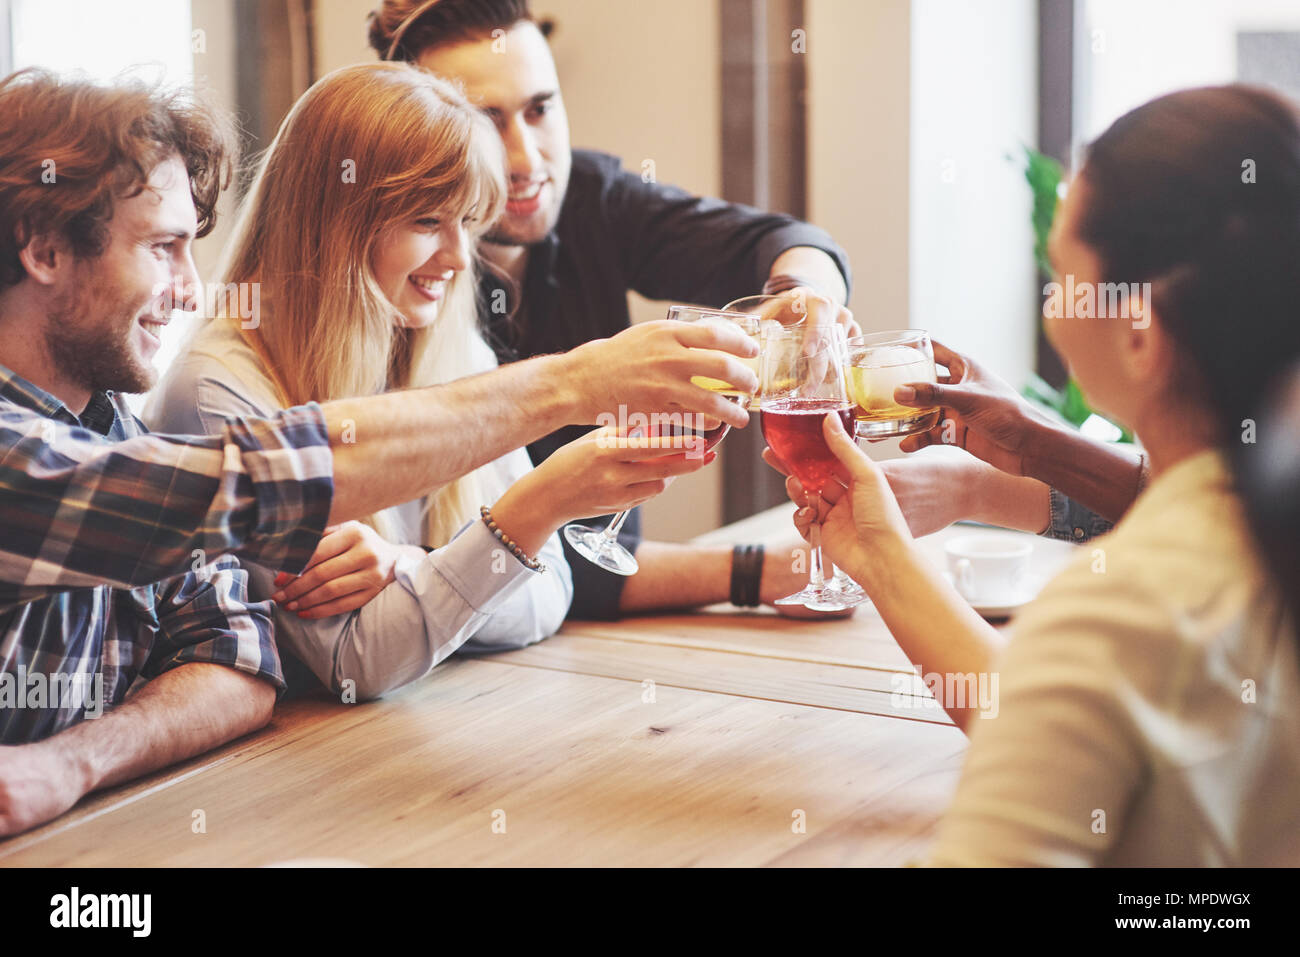 Hands of people with glasses of whiskey or wine, celebrating and toasting in honor of the wedding or other celebration - Stock Image